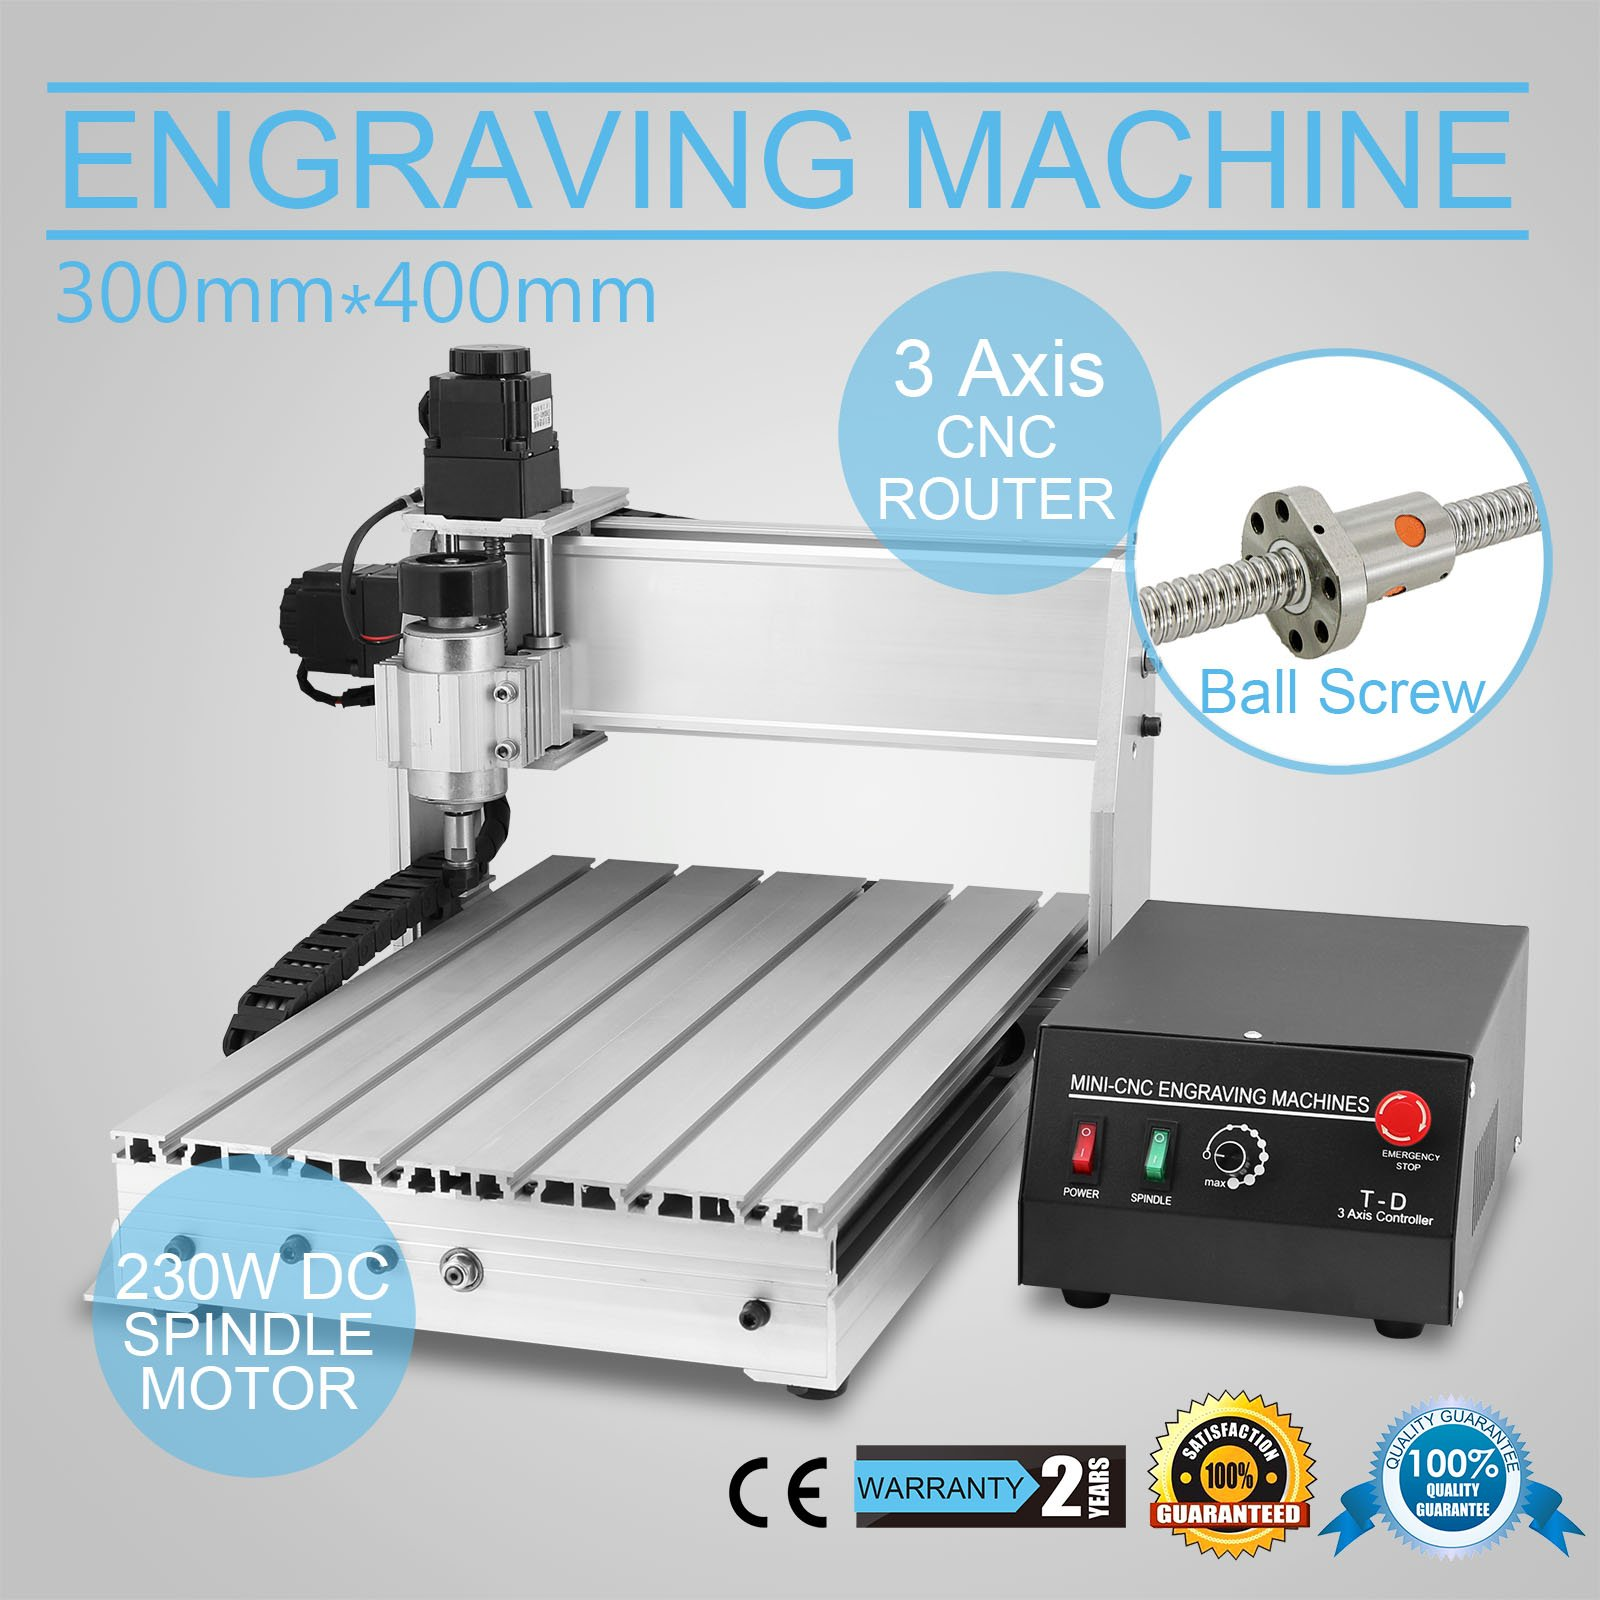 CNCShop CNC Router Engraving Machine Engraver Machine 3040T-DQ 3 Axis Desktop Wood Carving Tools Artwork Milling Woodworking (3040T-DQ 3 Axis)